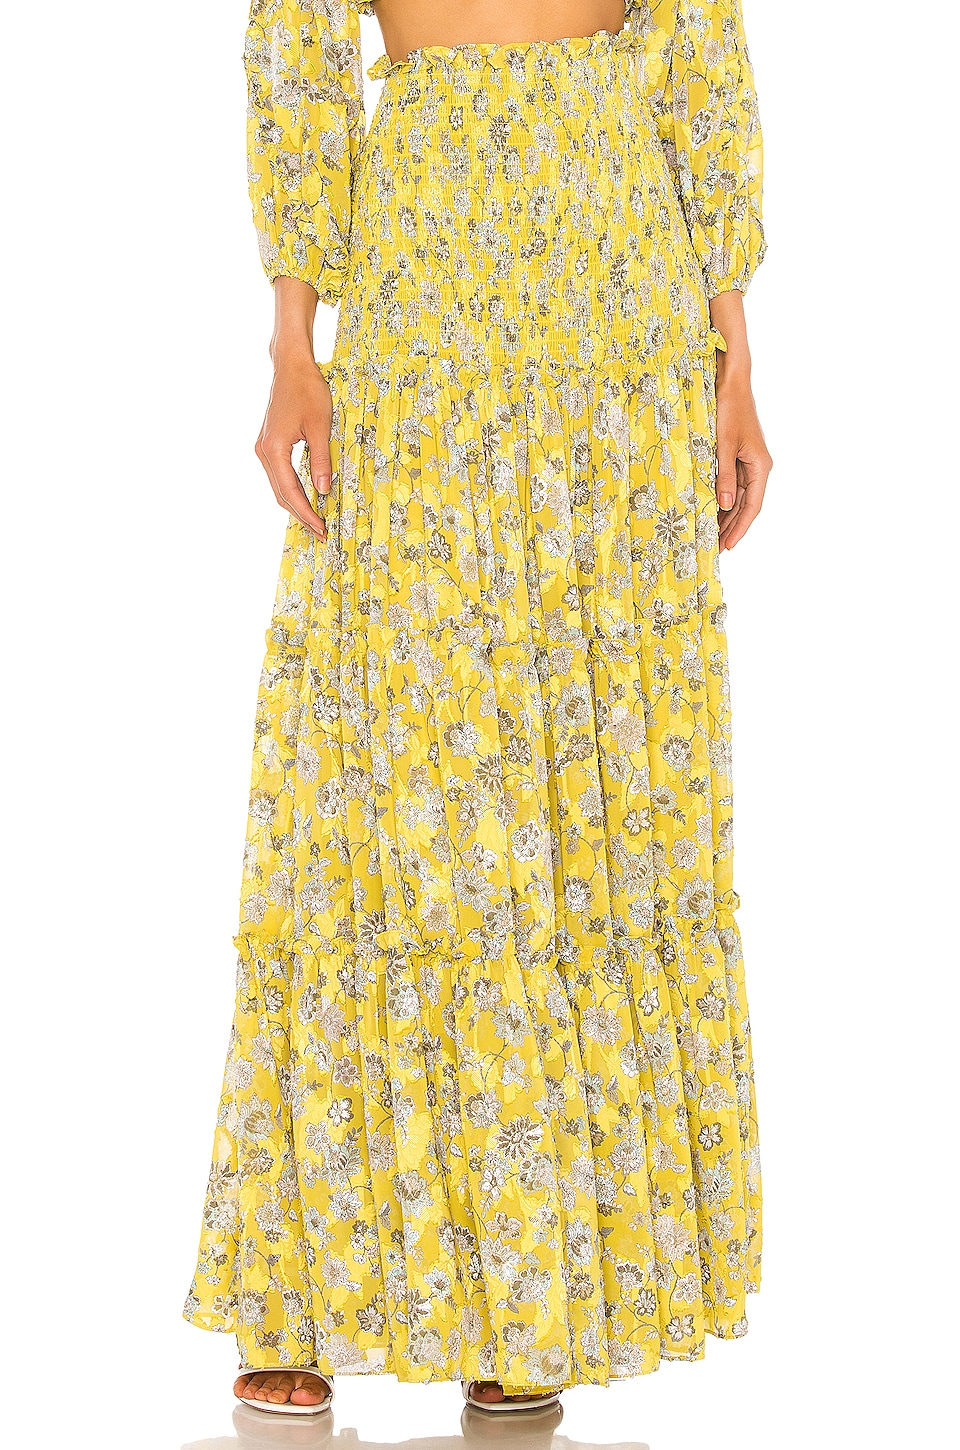 Alexis Galarza Skirt in Citron Floral